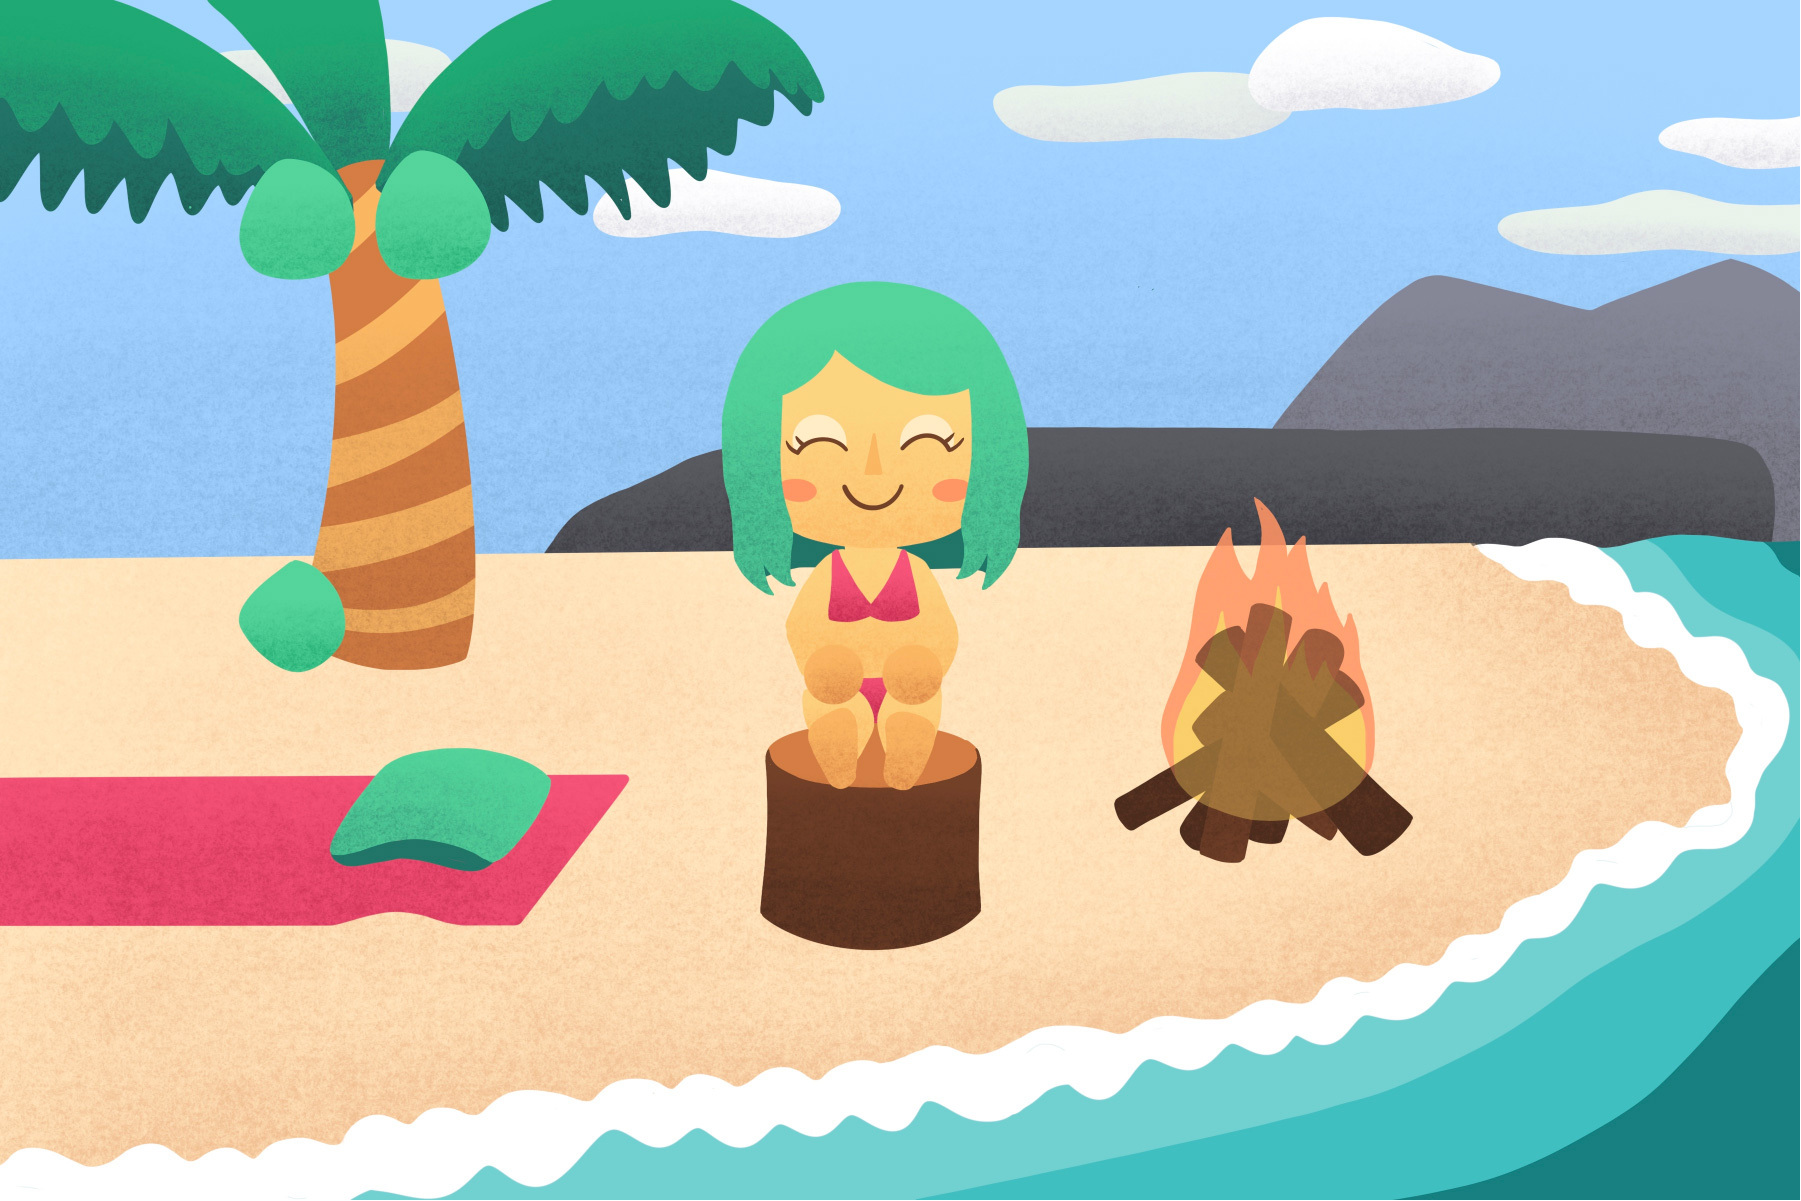 illustration of an animal crossing: new horizons character on an island with a palm tree and a campfire